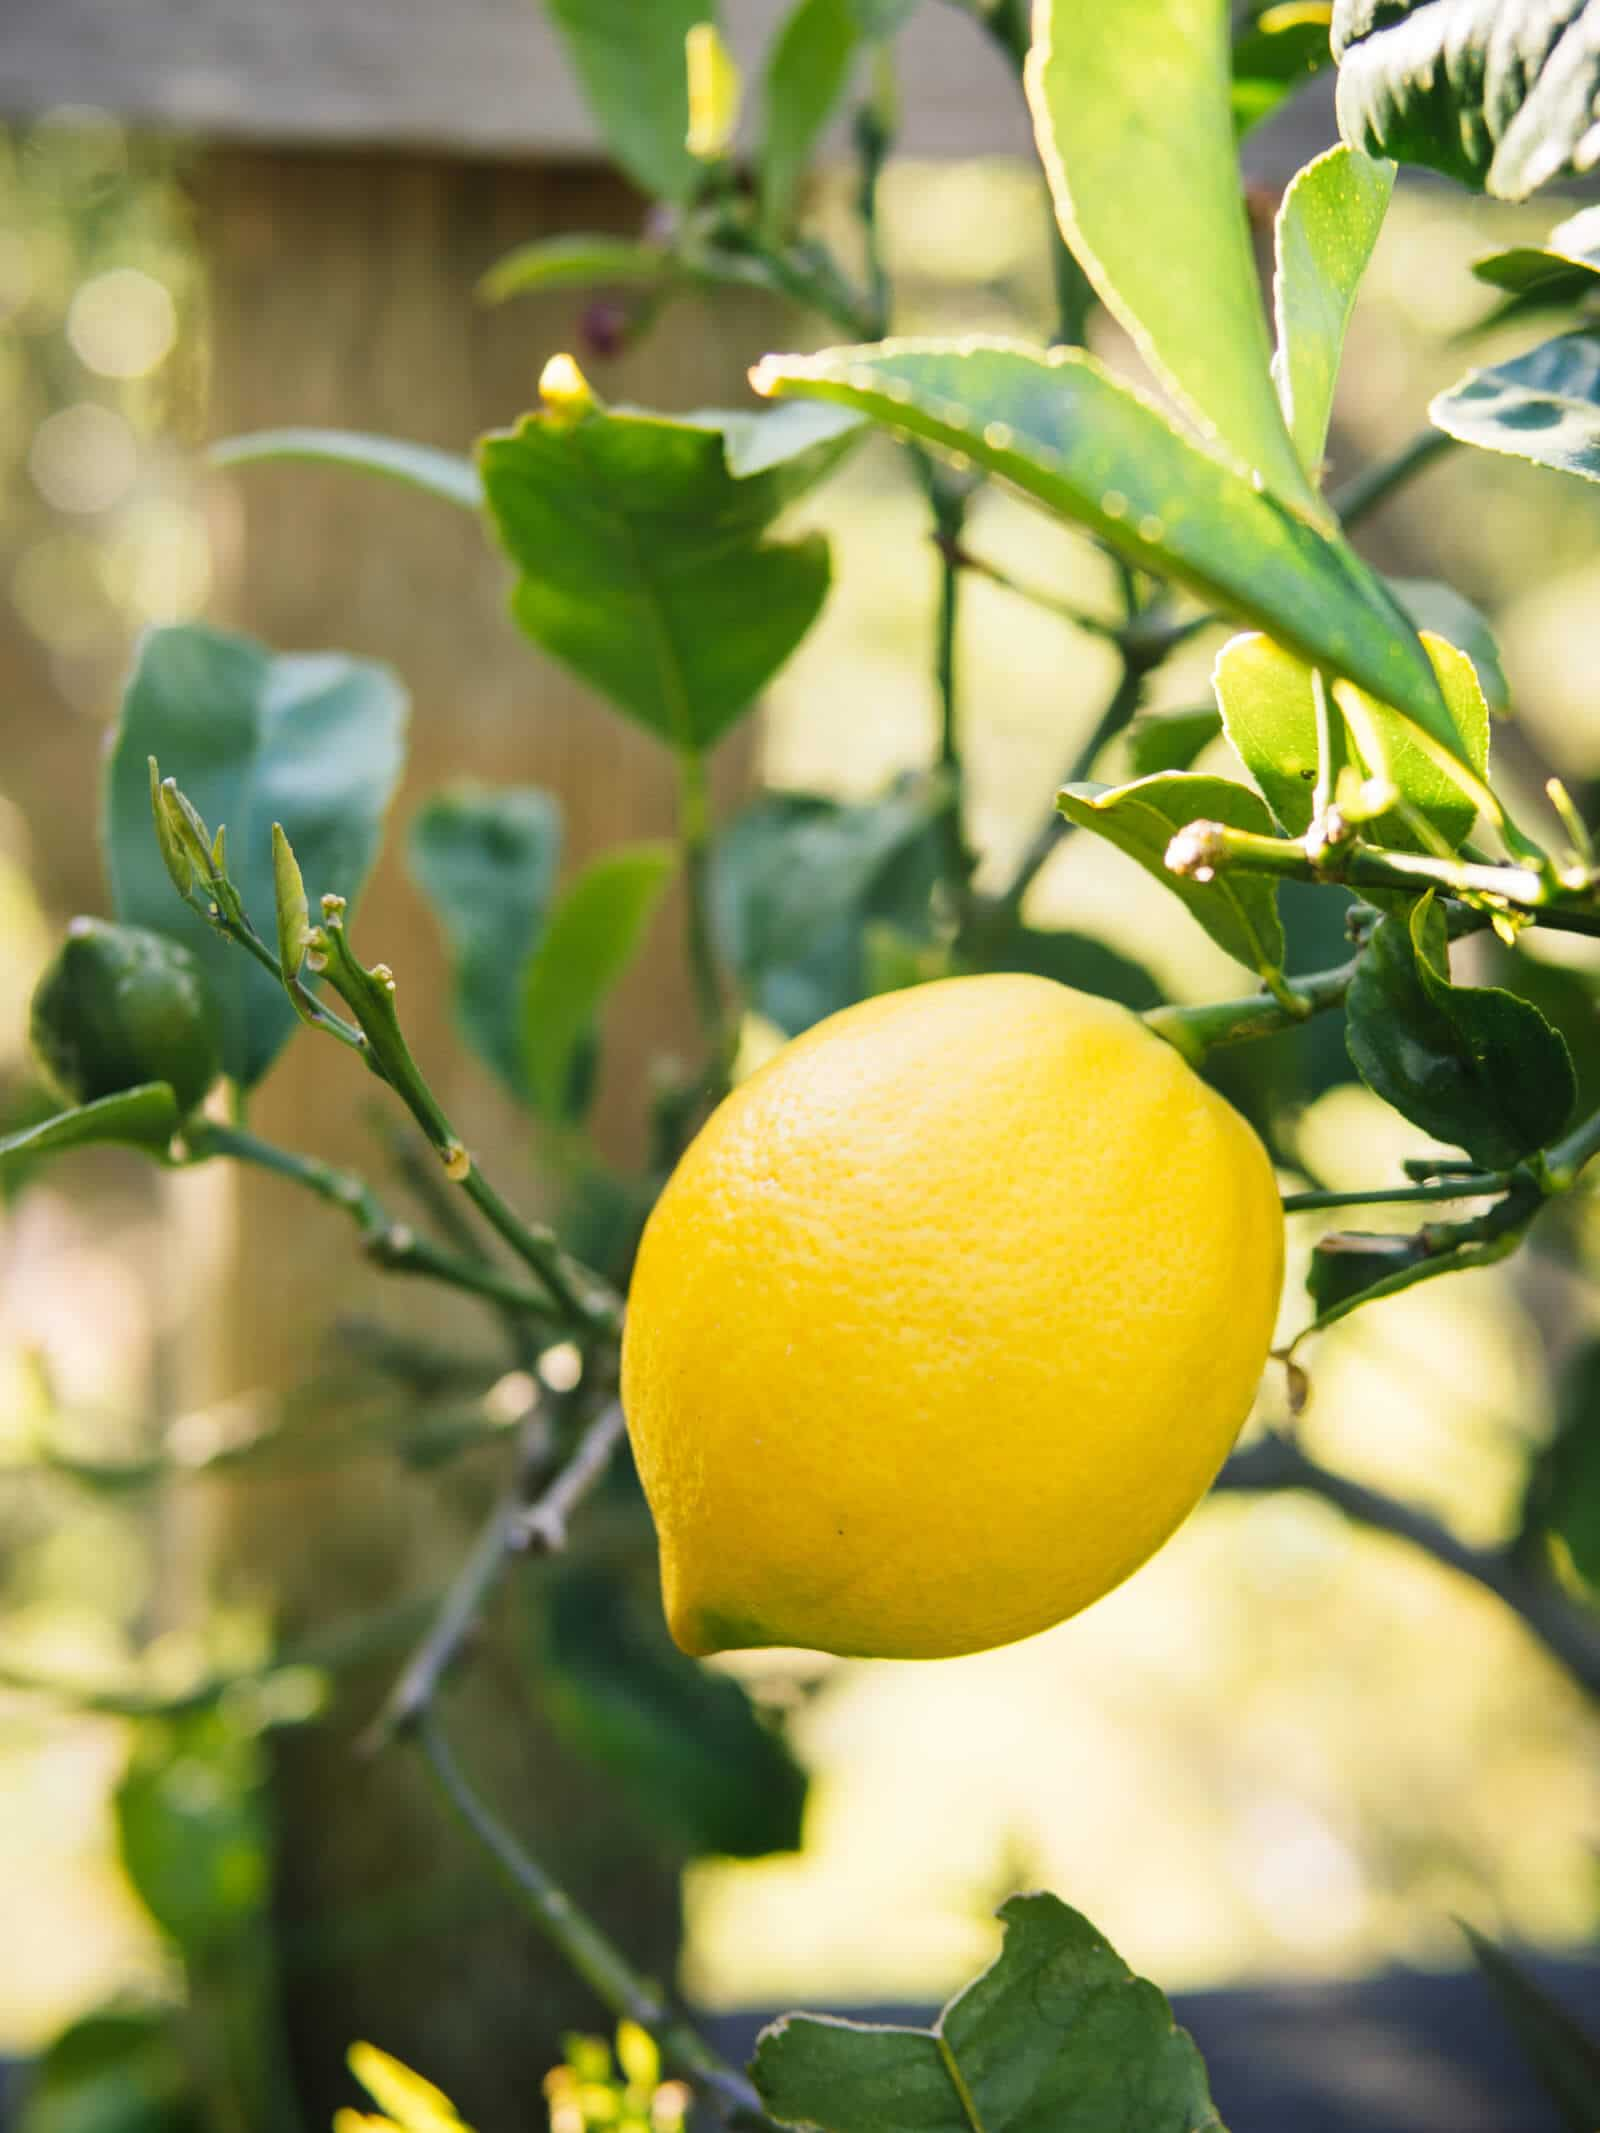 Lemon is a natural immune booster with antioxidant, antiviral, and antifungal benefits